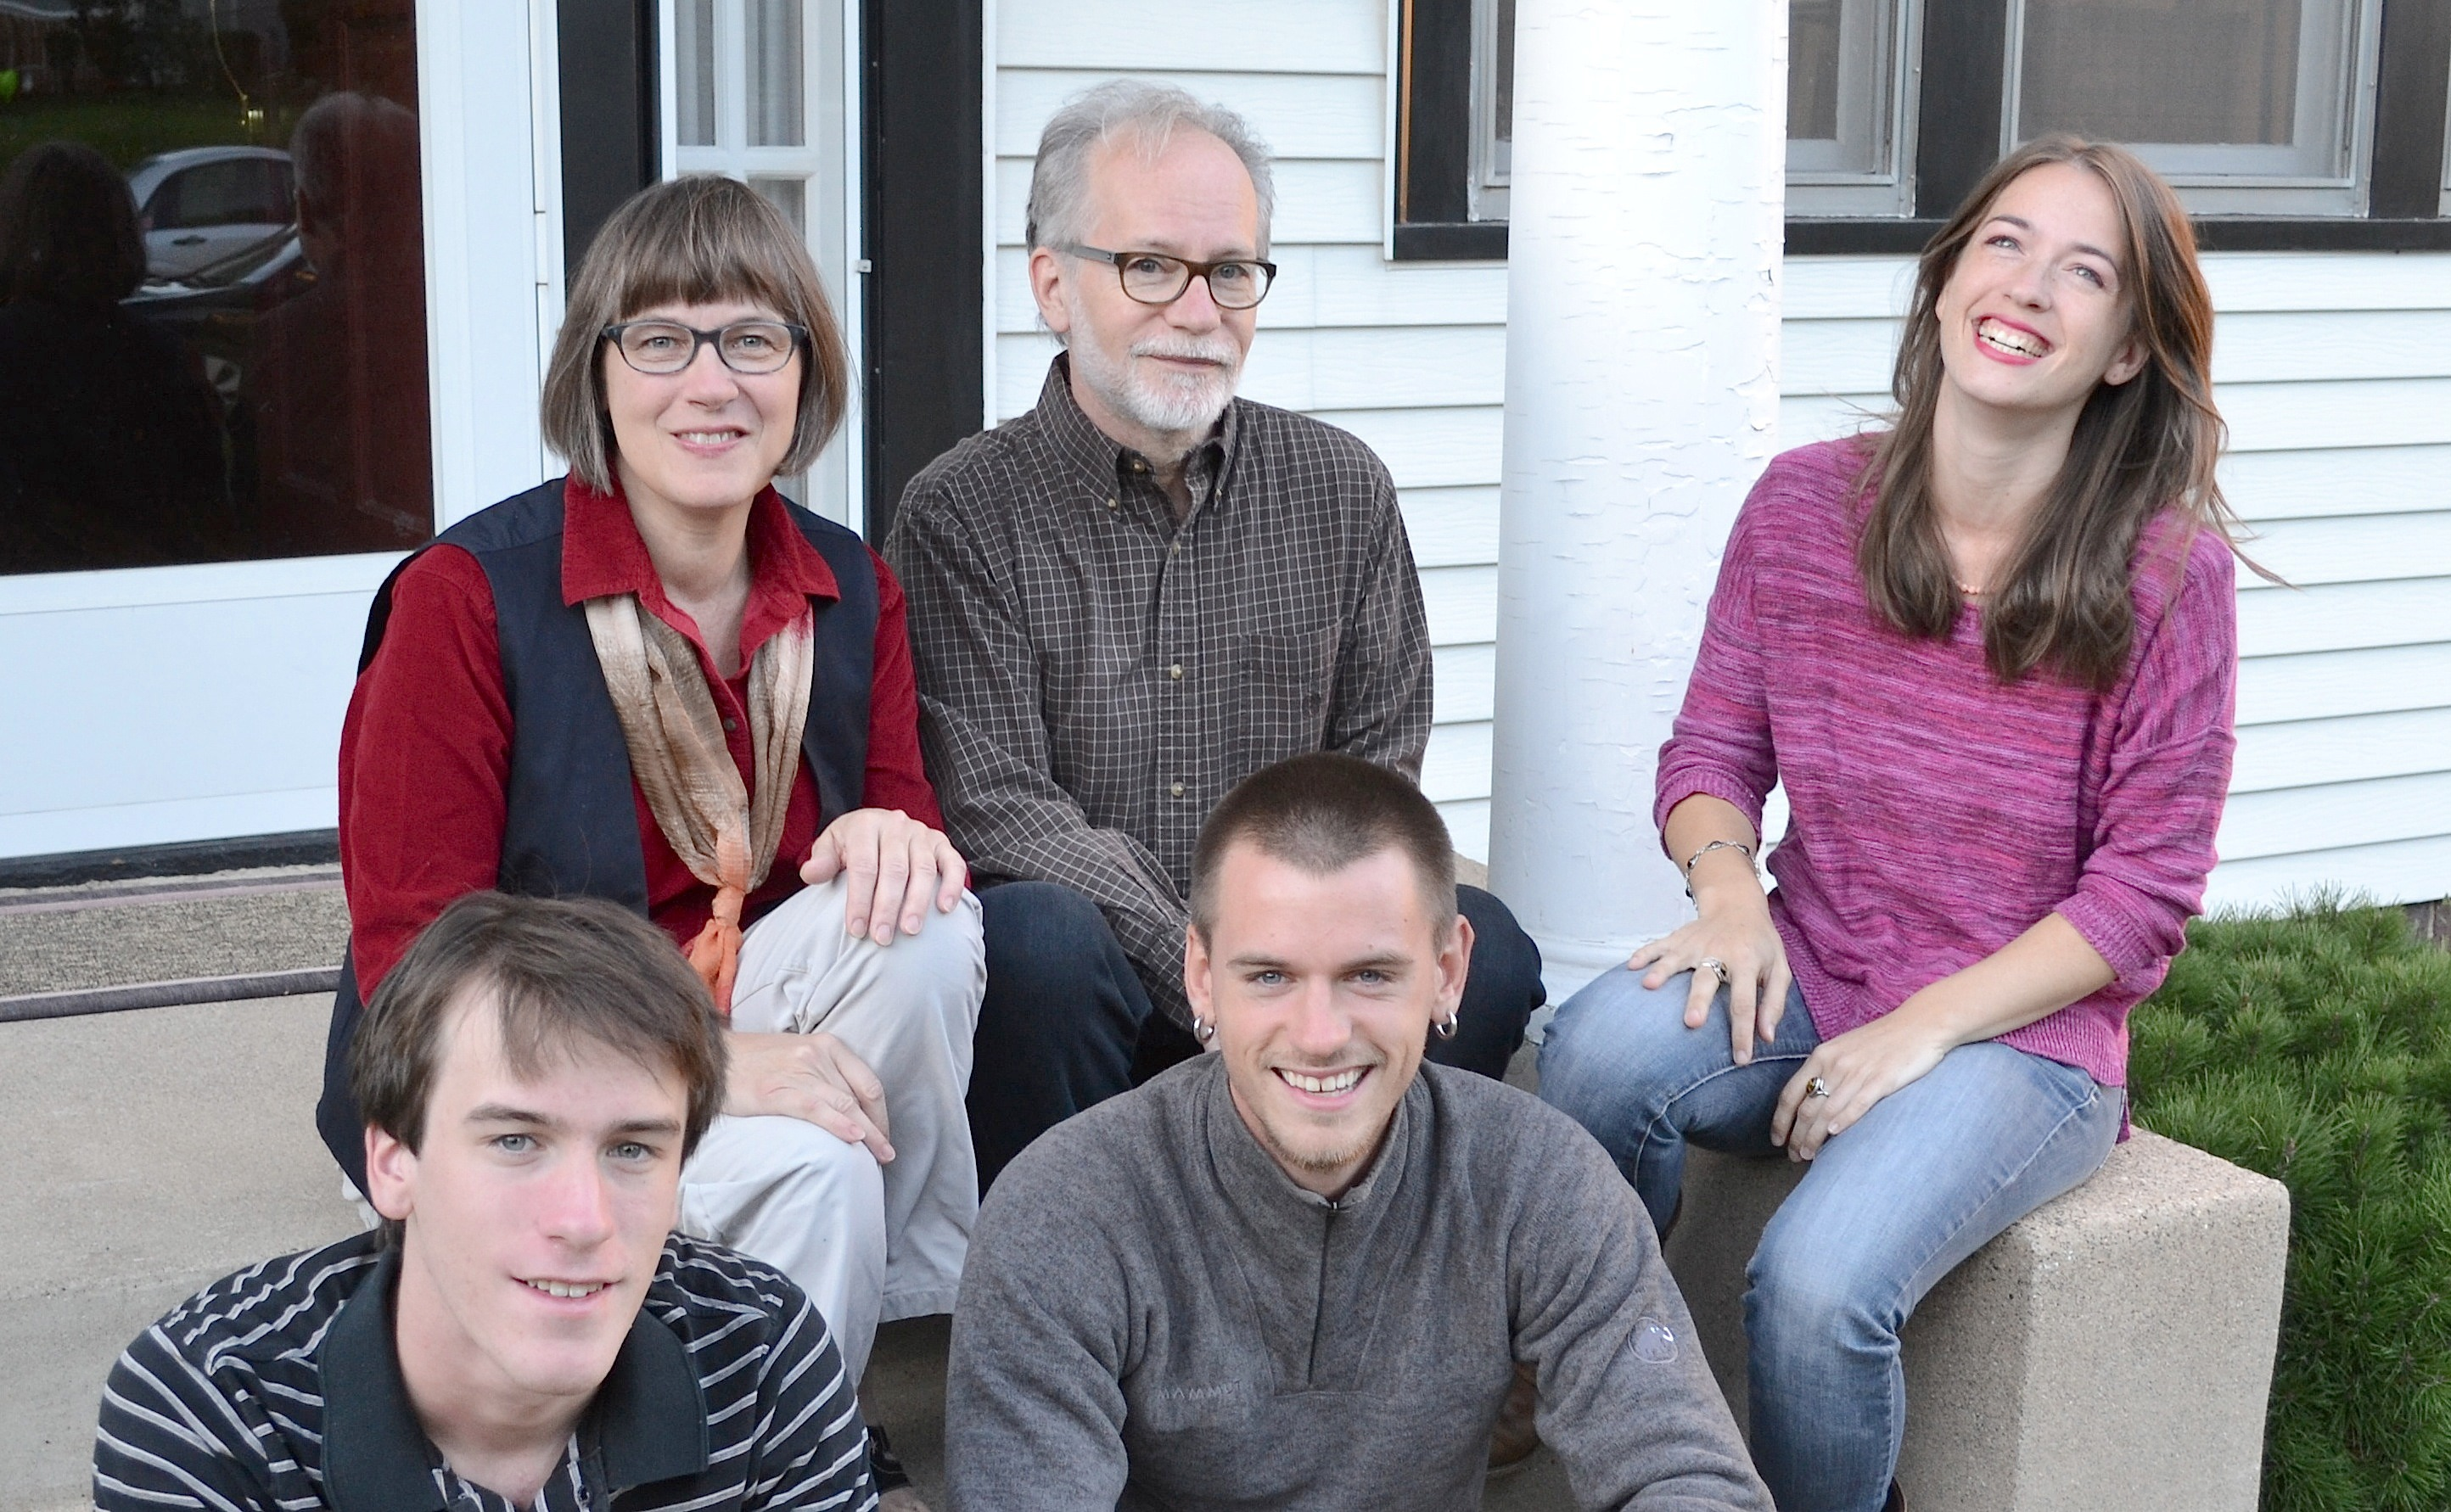 John Thavis and his family. He is a journalist